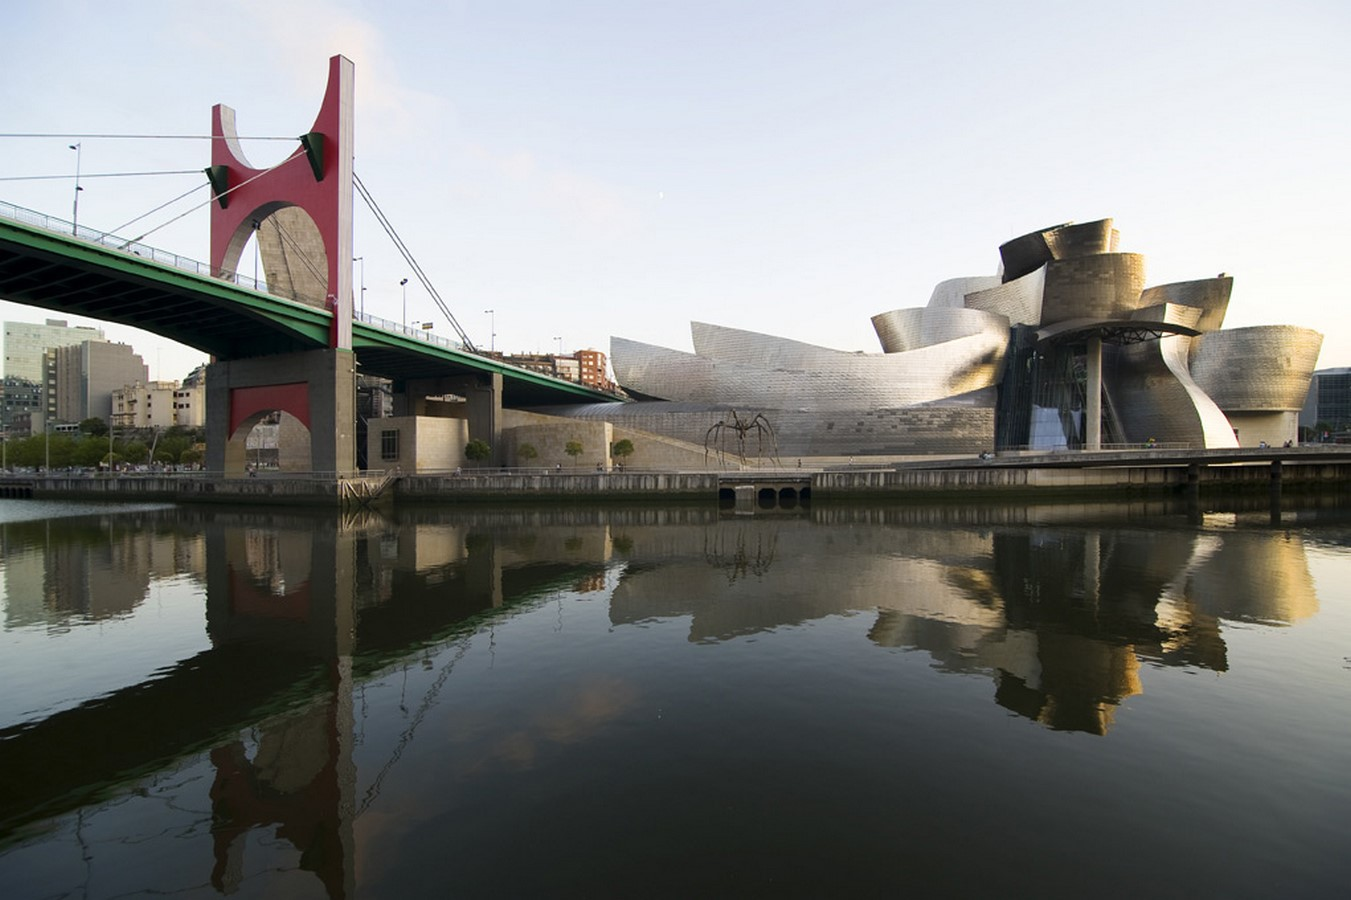 10 Things you did not know about Guggenheim Museum, Bilbao - Sheet1